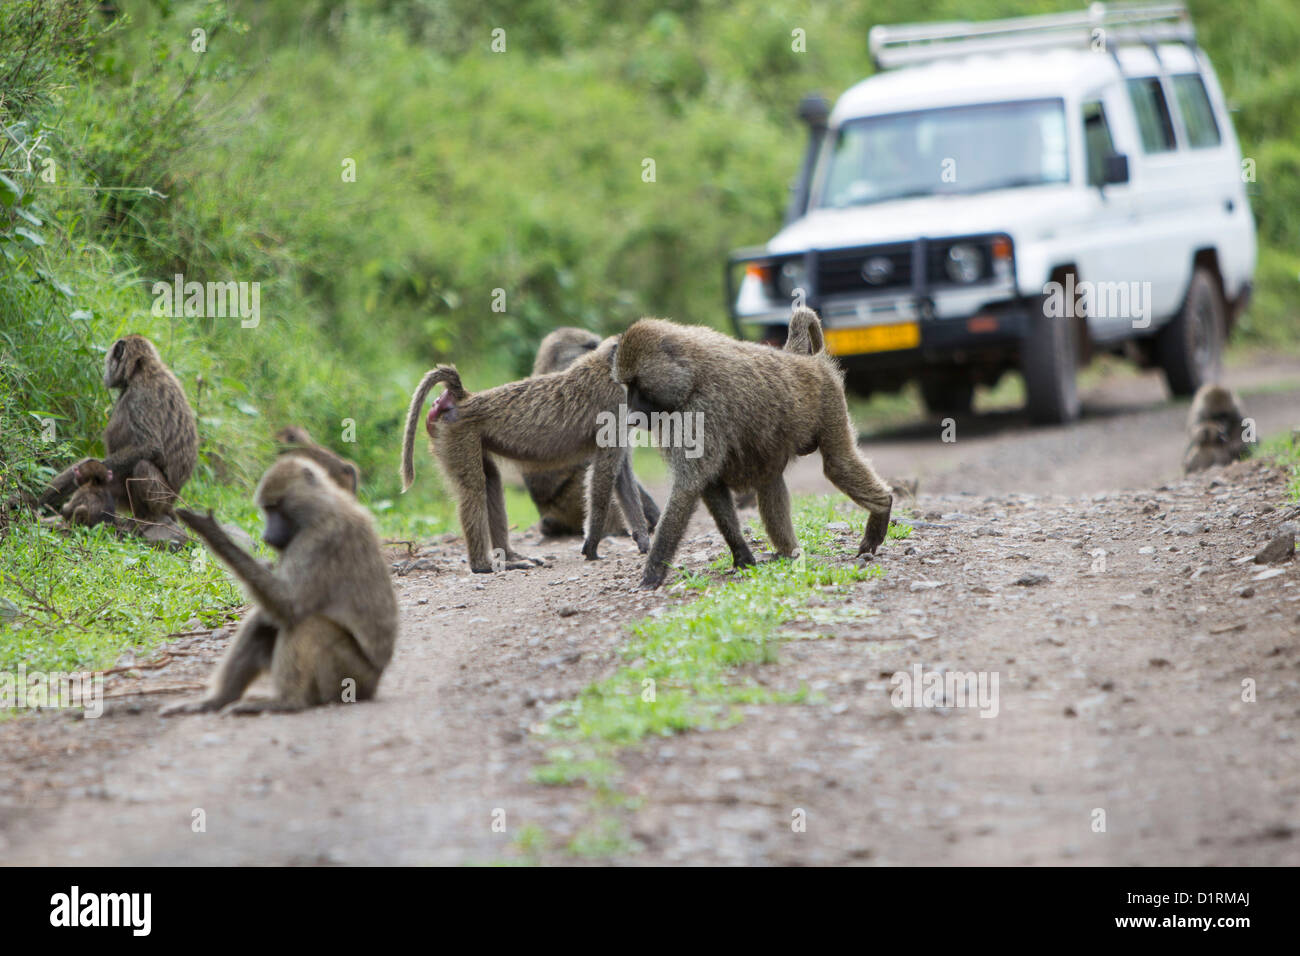 Baboons and safari vehicle in Arusha National Park Tanzania Africa - Stock Image